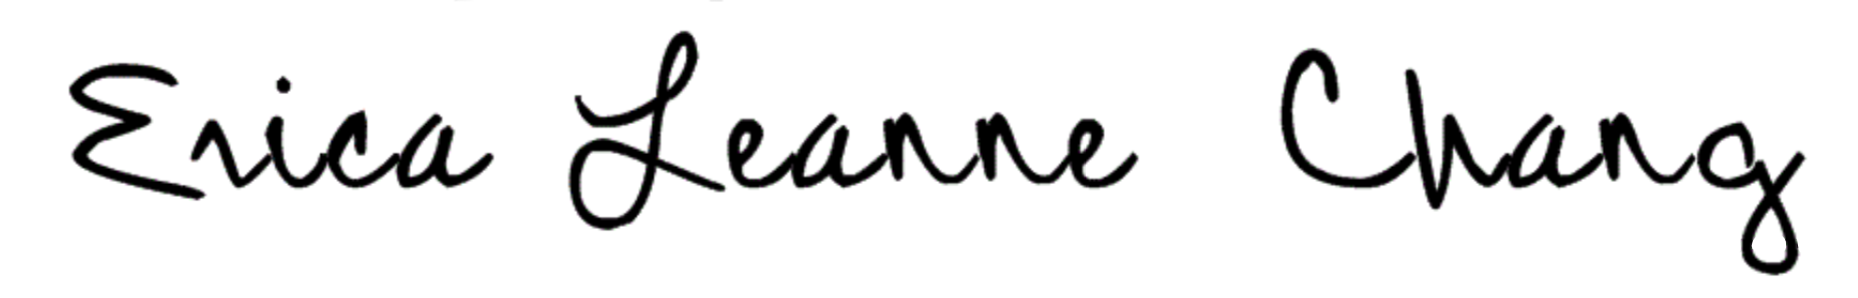 erica leanne chang signature 1